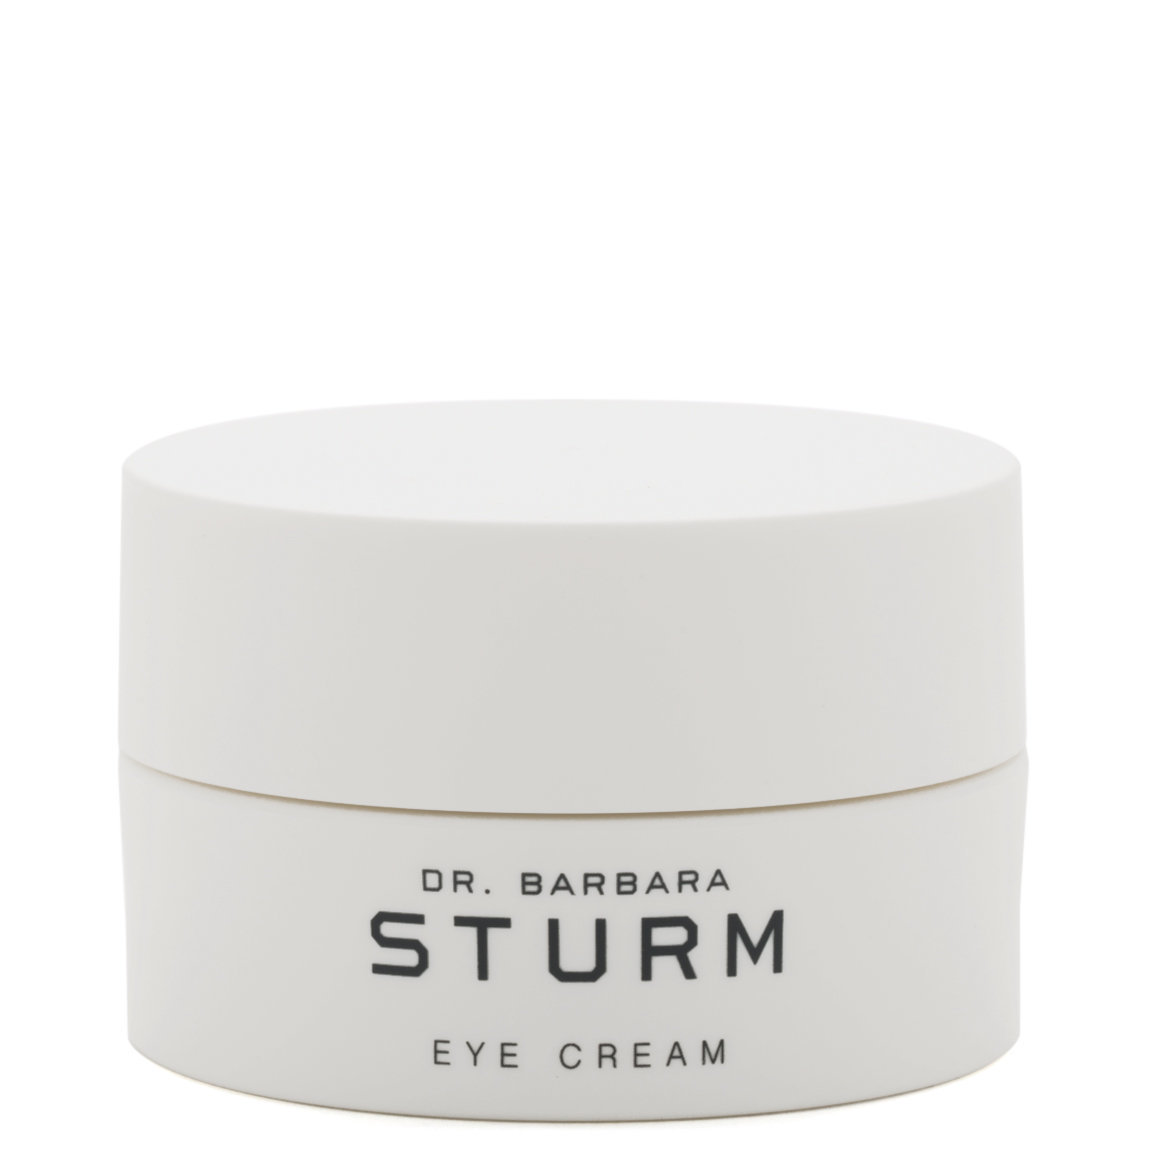 Dr. Barbara Sturm Eye Cream alternative view 1 - product swatch.